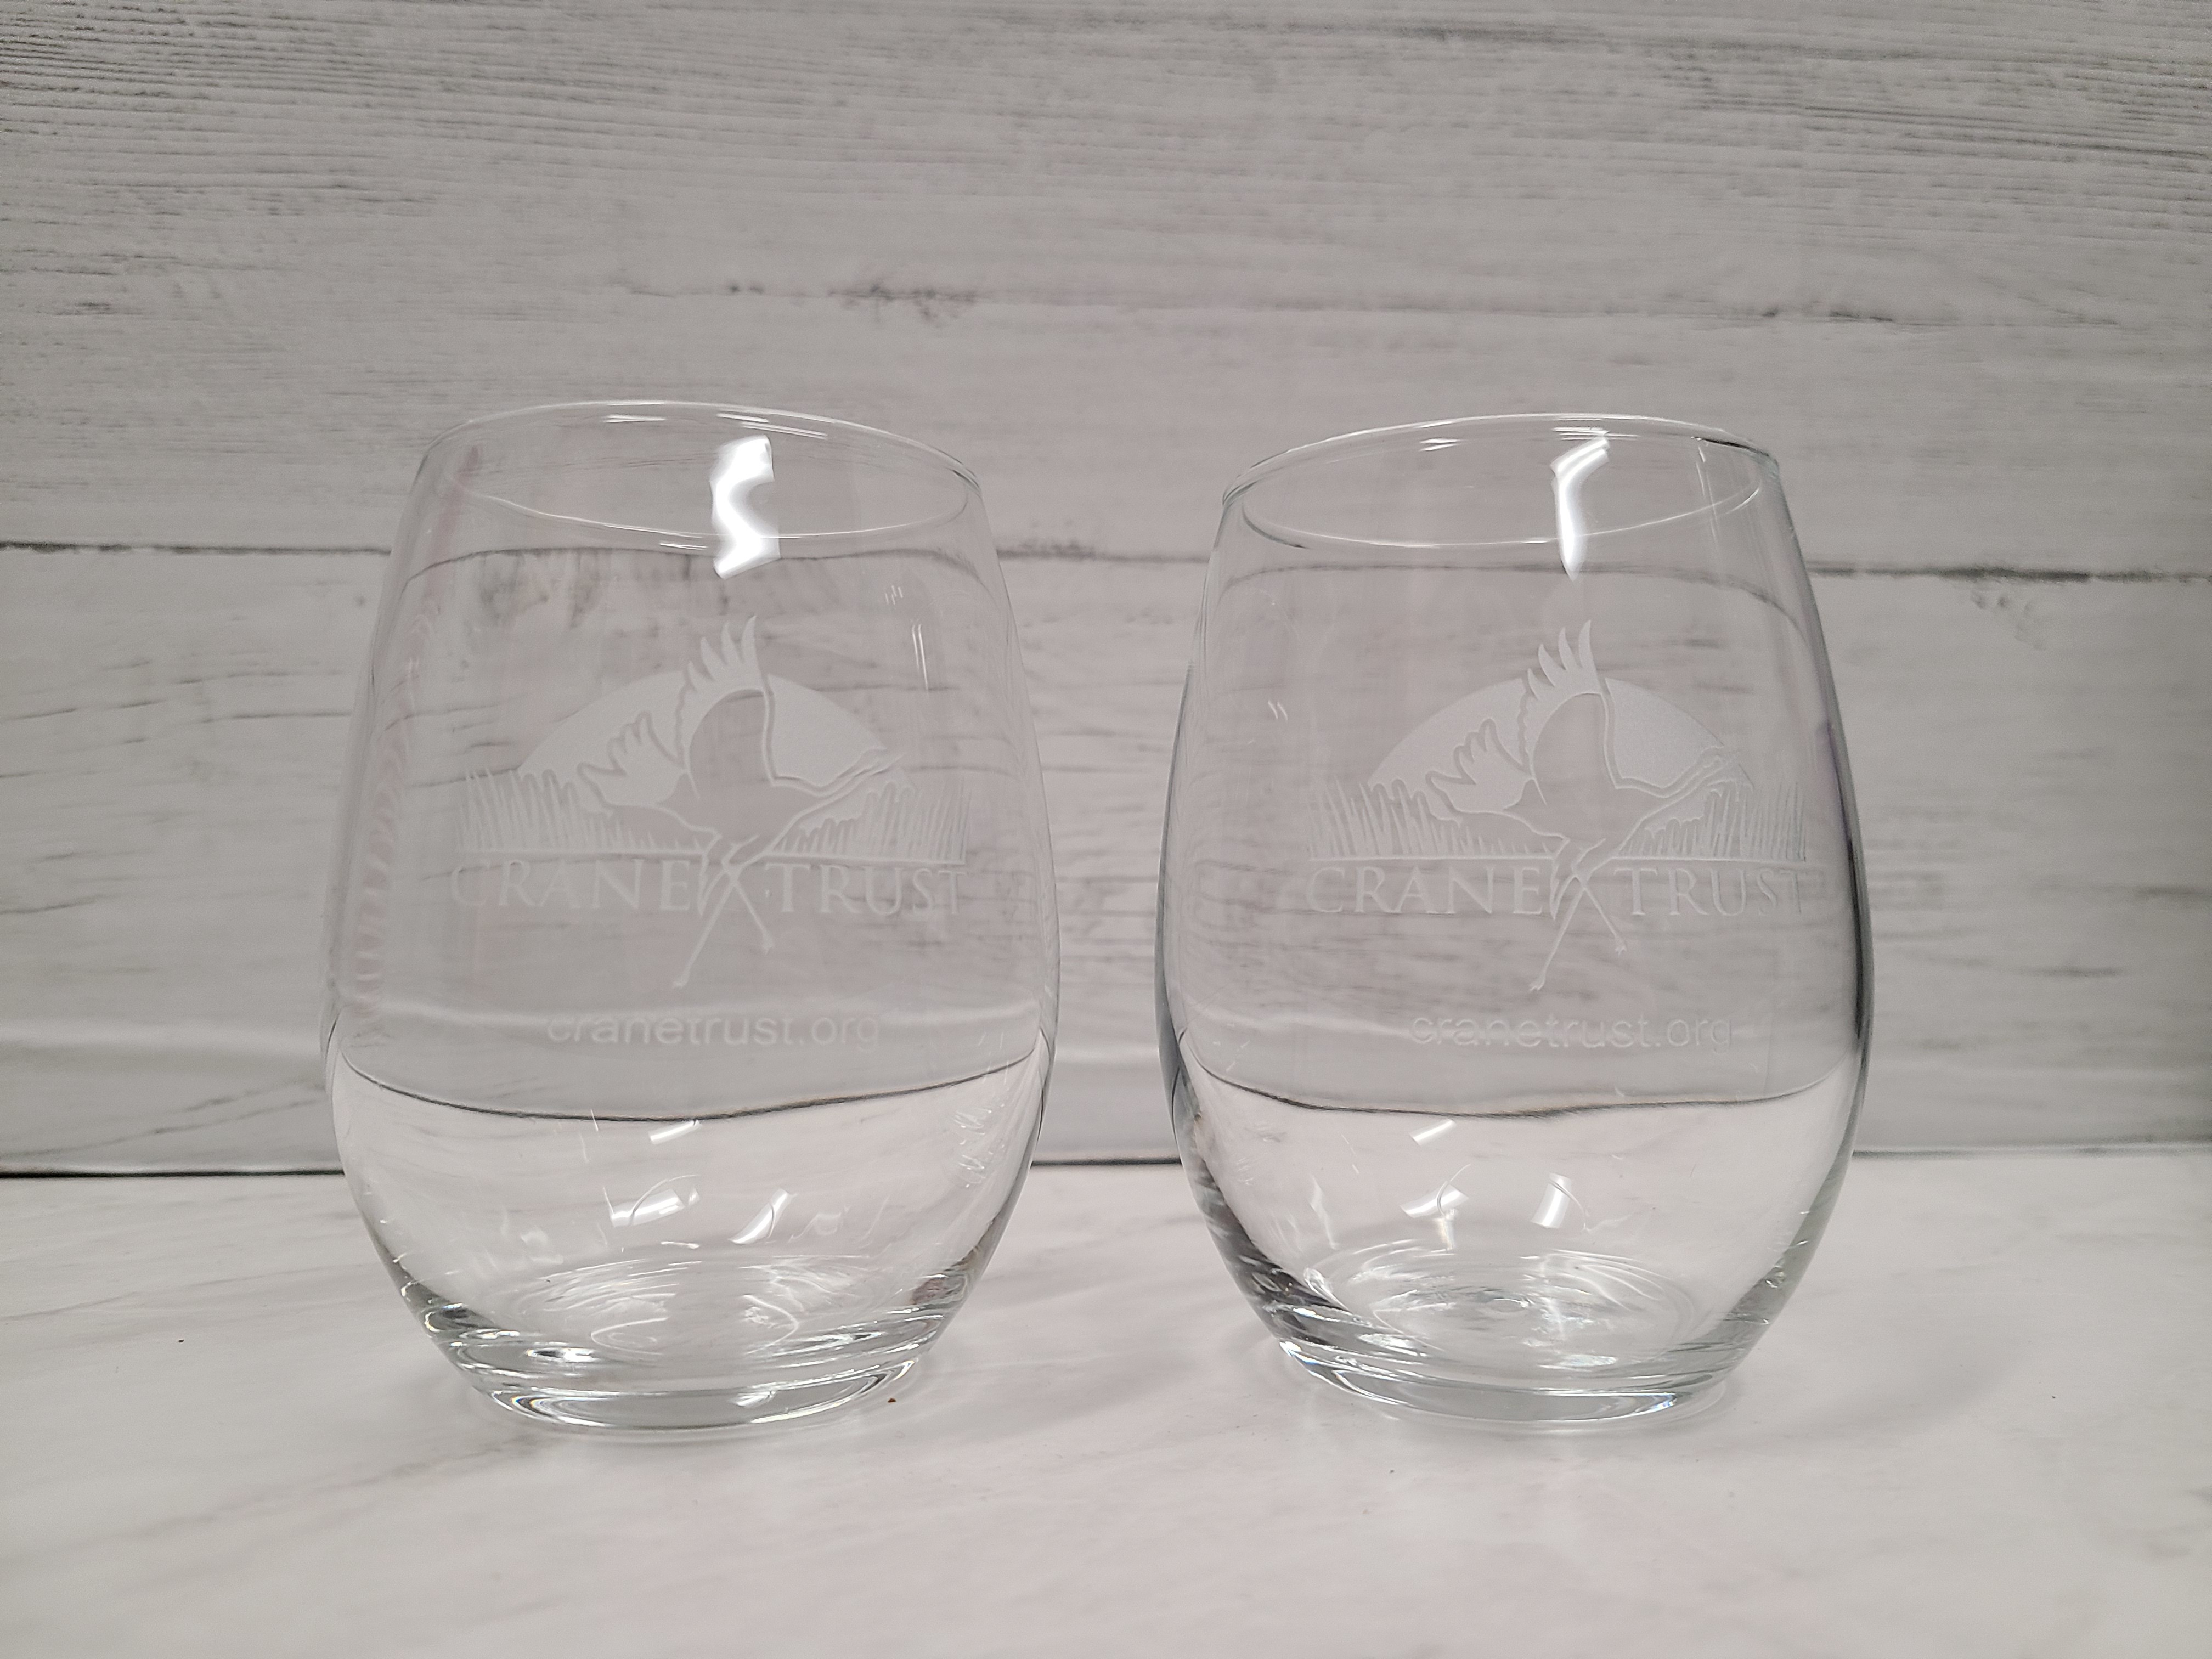 15 oz Stemless Wine Glass Etched with the Crane Trust Logo